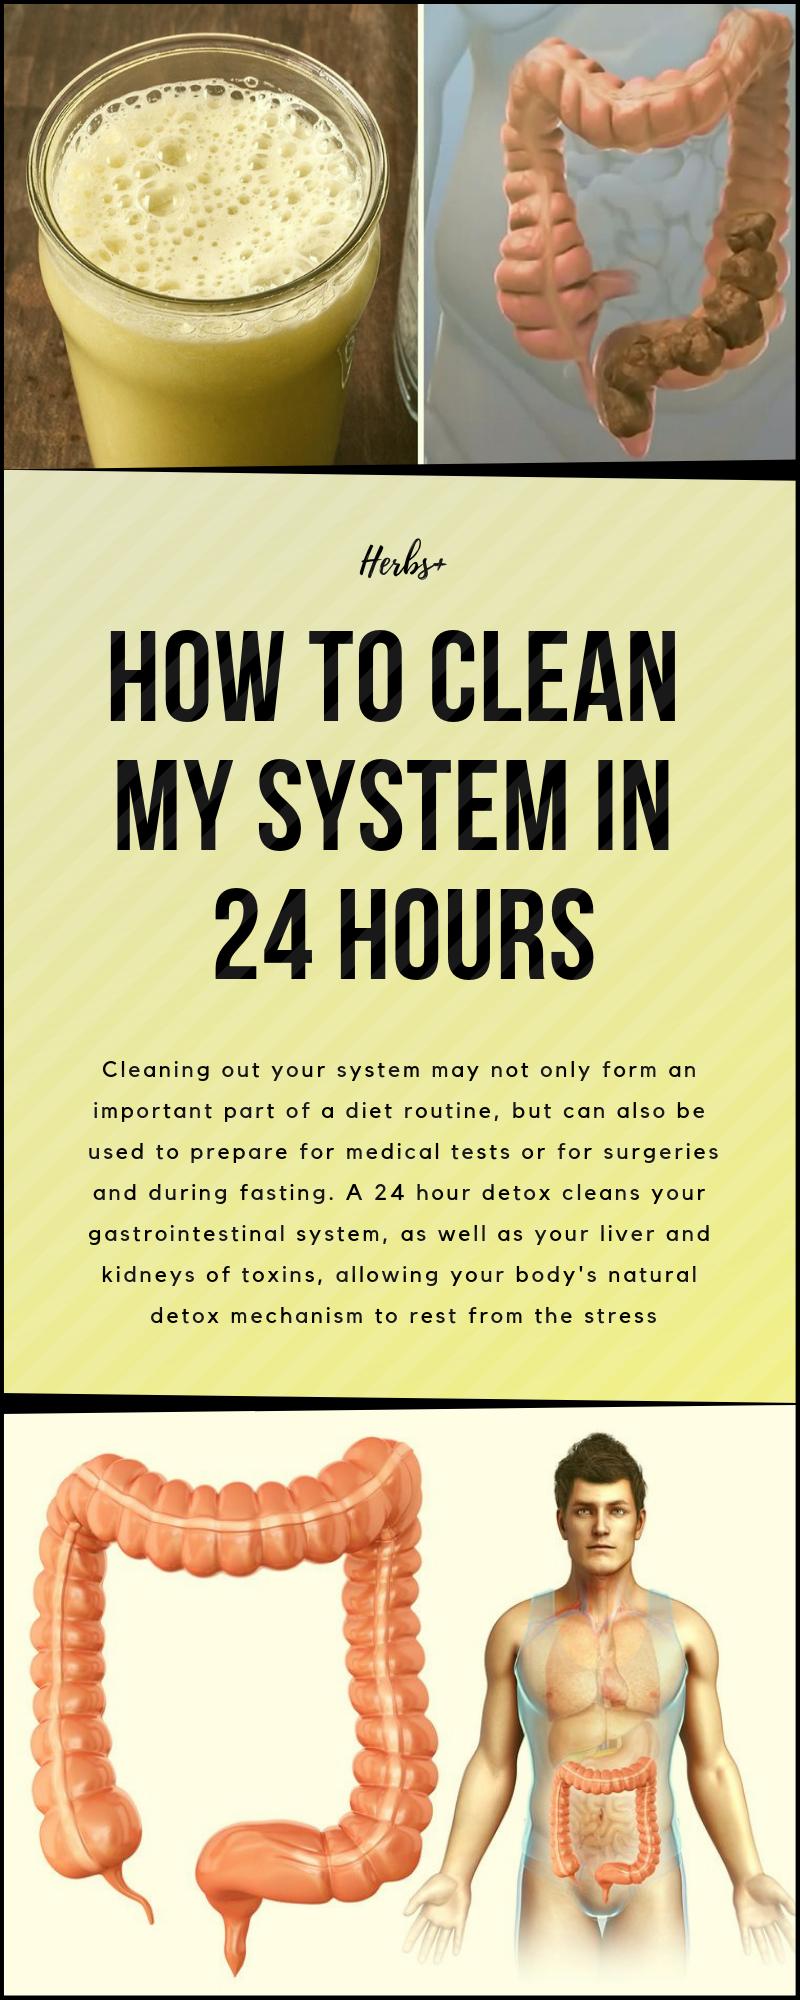 9723455f0c163dbaa21ba28a34b4b7ba - How To Get Rid Of Weed In Your System Quickly